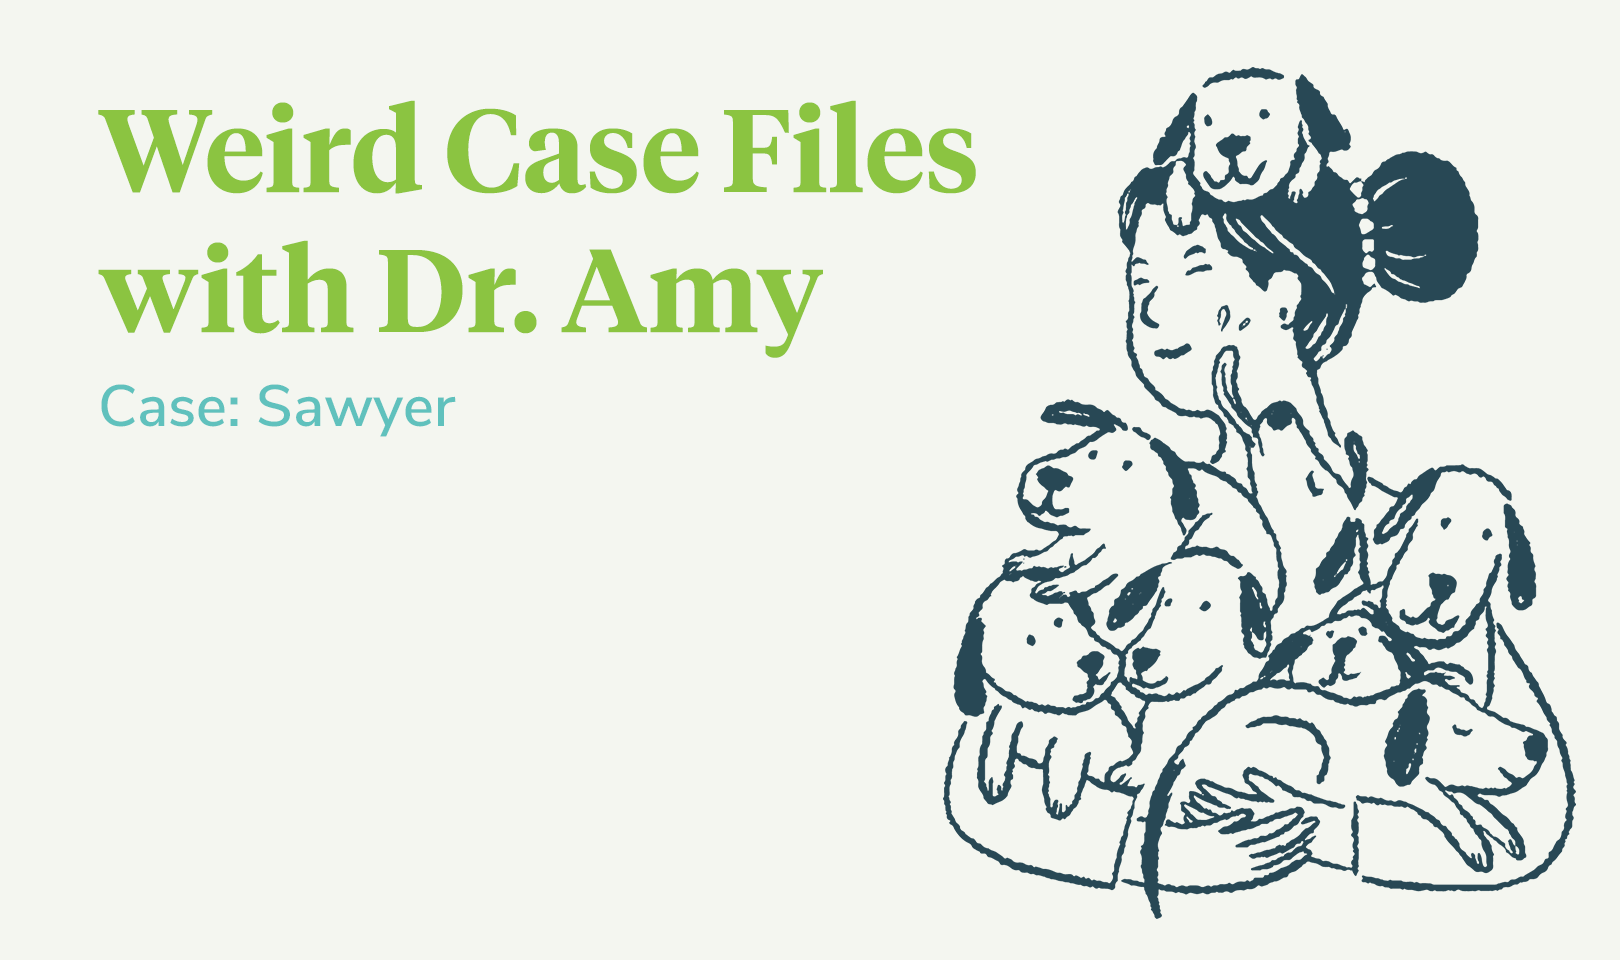 Weird Case files with Dr. Amy - Sawyer